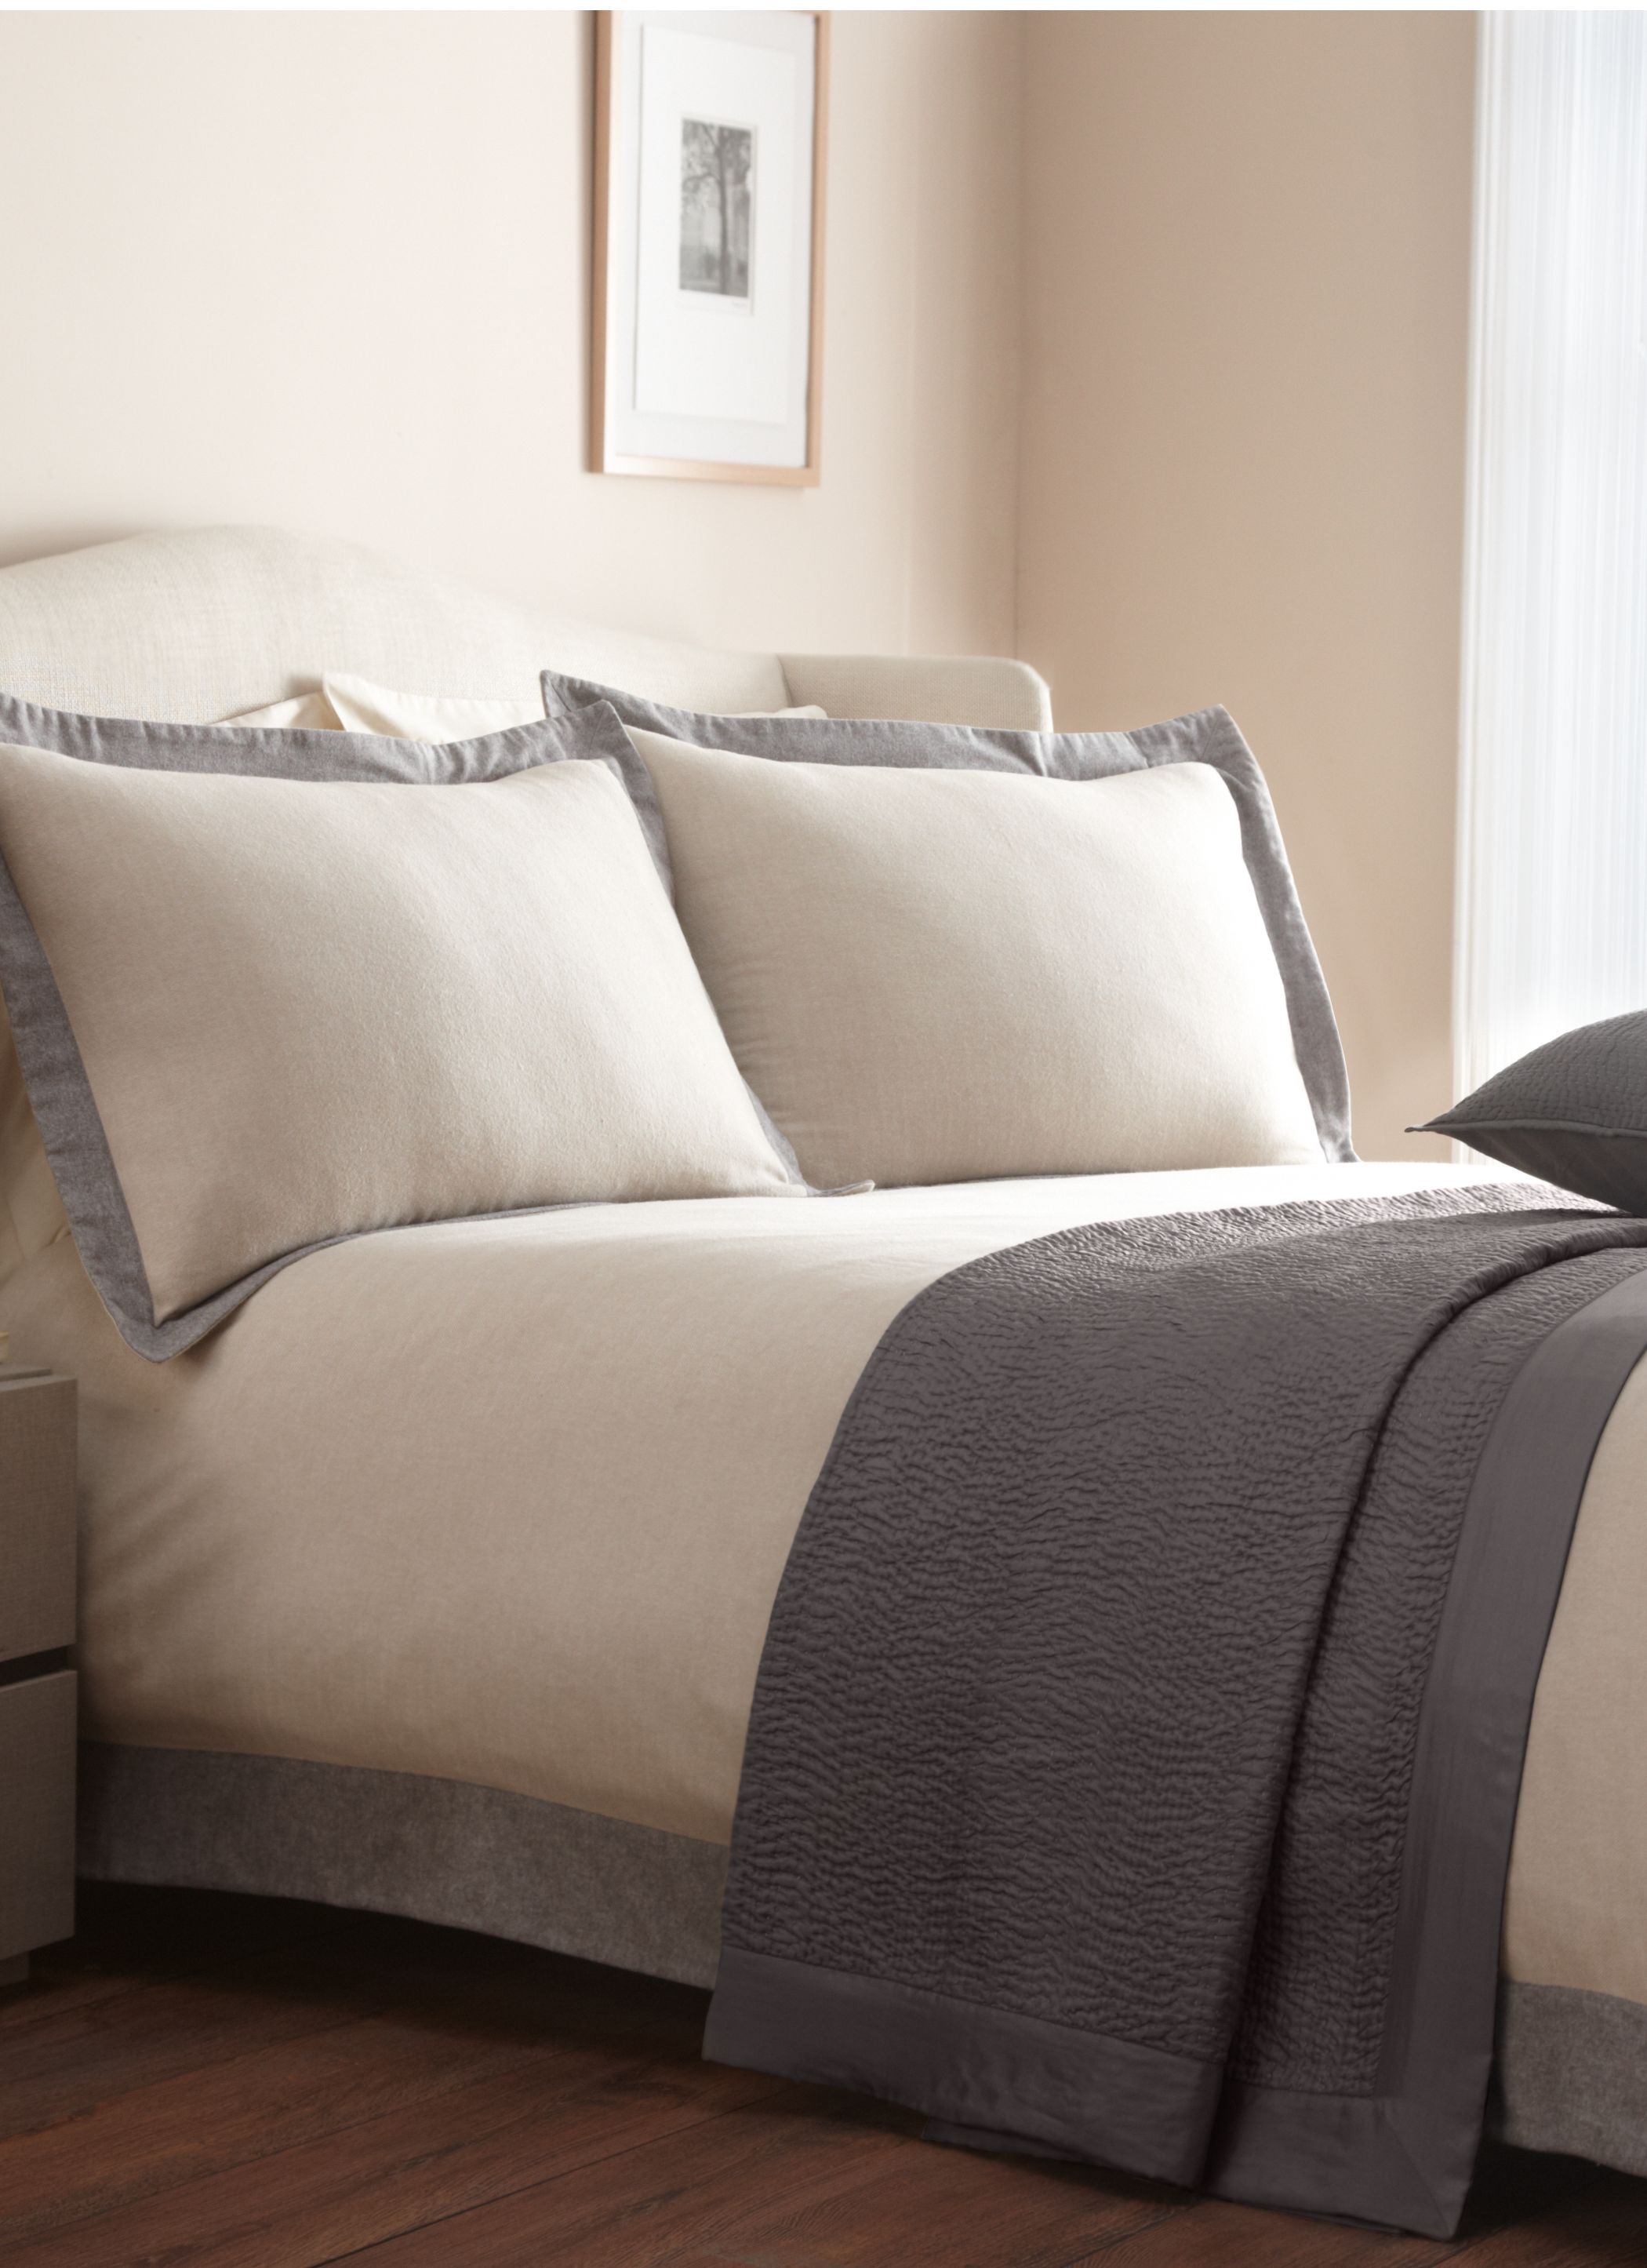 Oxford flannel double duvet cover